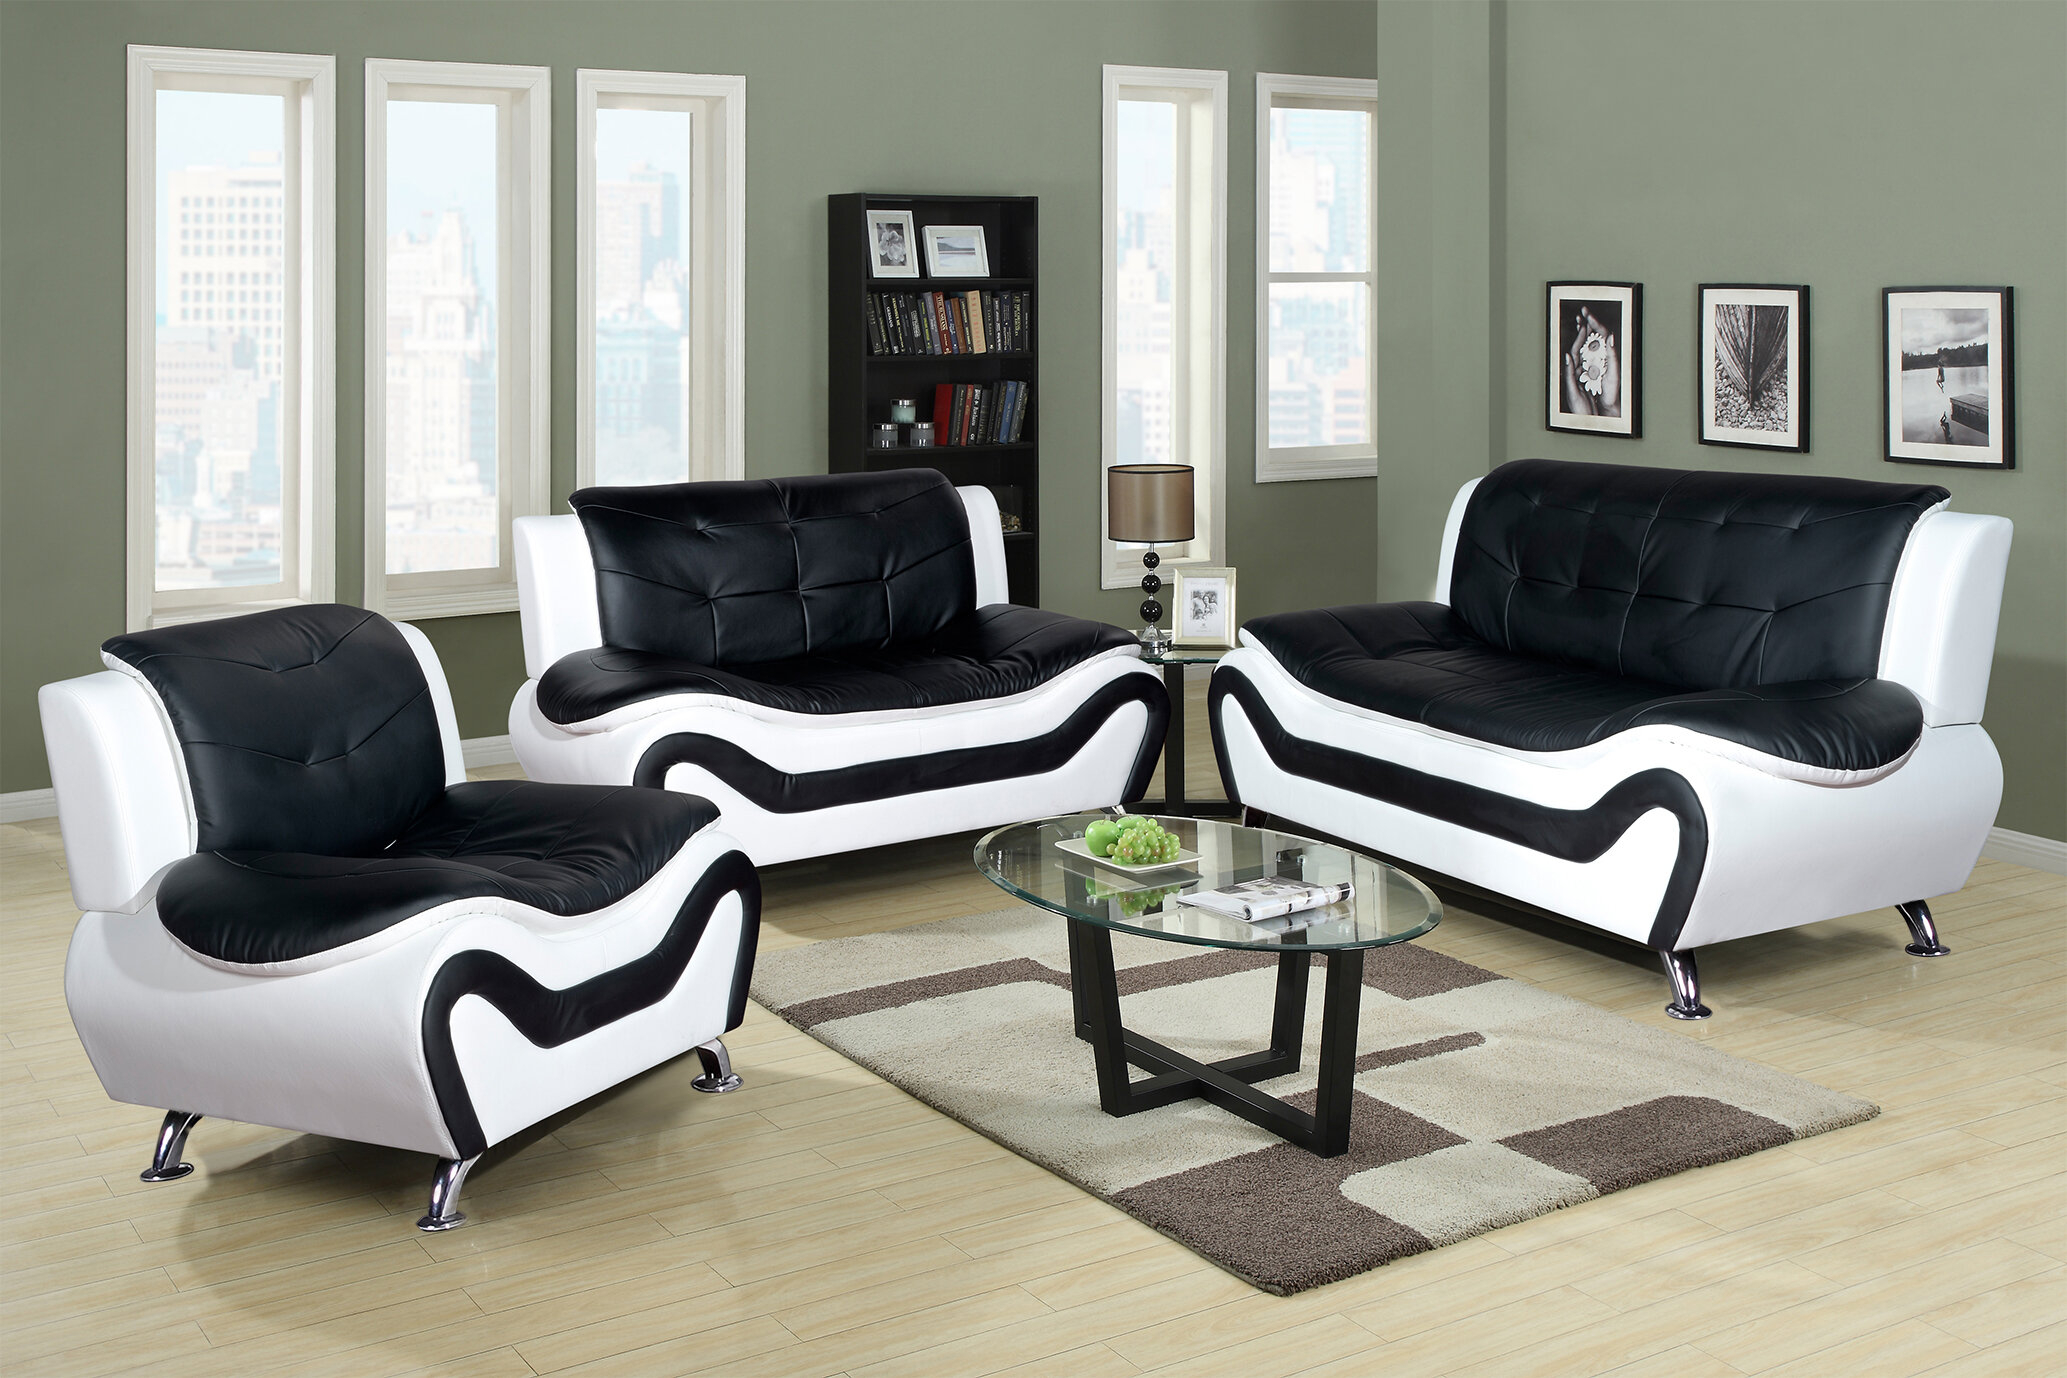 Chicoine 3 Piece Living Room Set pertaining to 12 Genius Initiatives of How to Makeover Living Room 3 Piece Sets